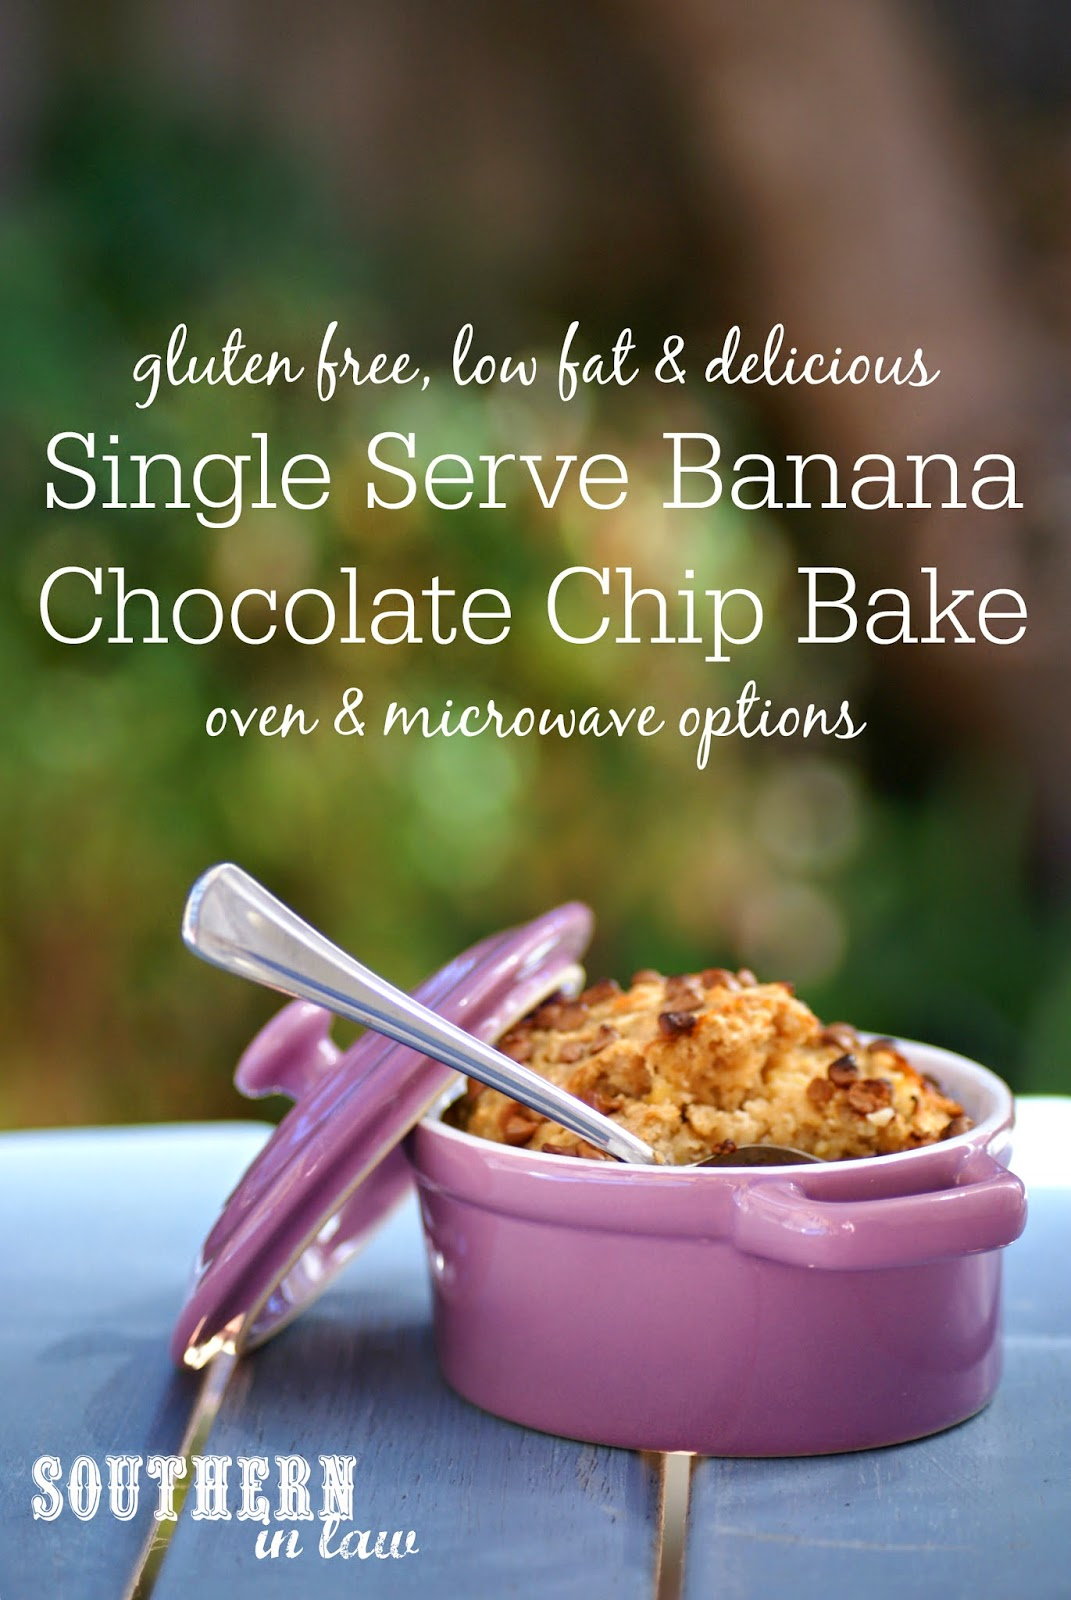 Single Serve Banana Chocolate Chip Bake - Oven or Microwave Recipe - Gluten free, healthy, low fat, sugar free